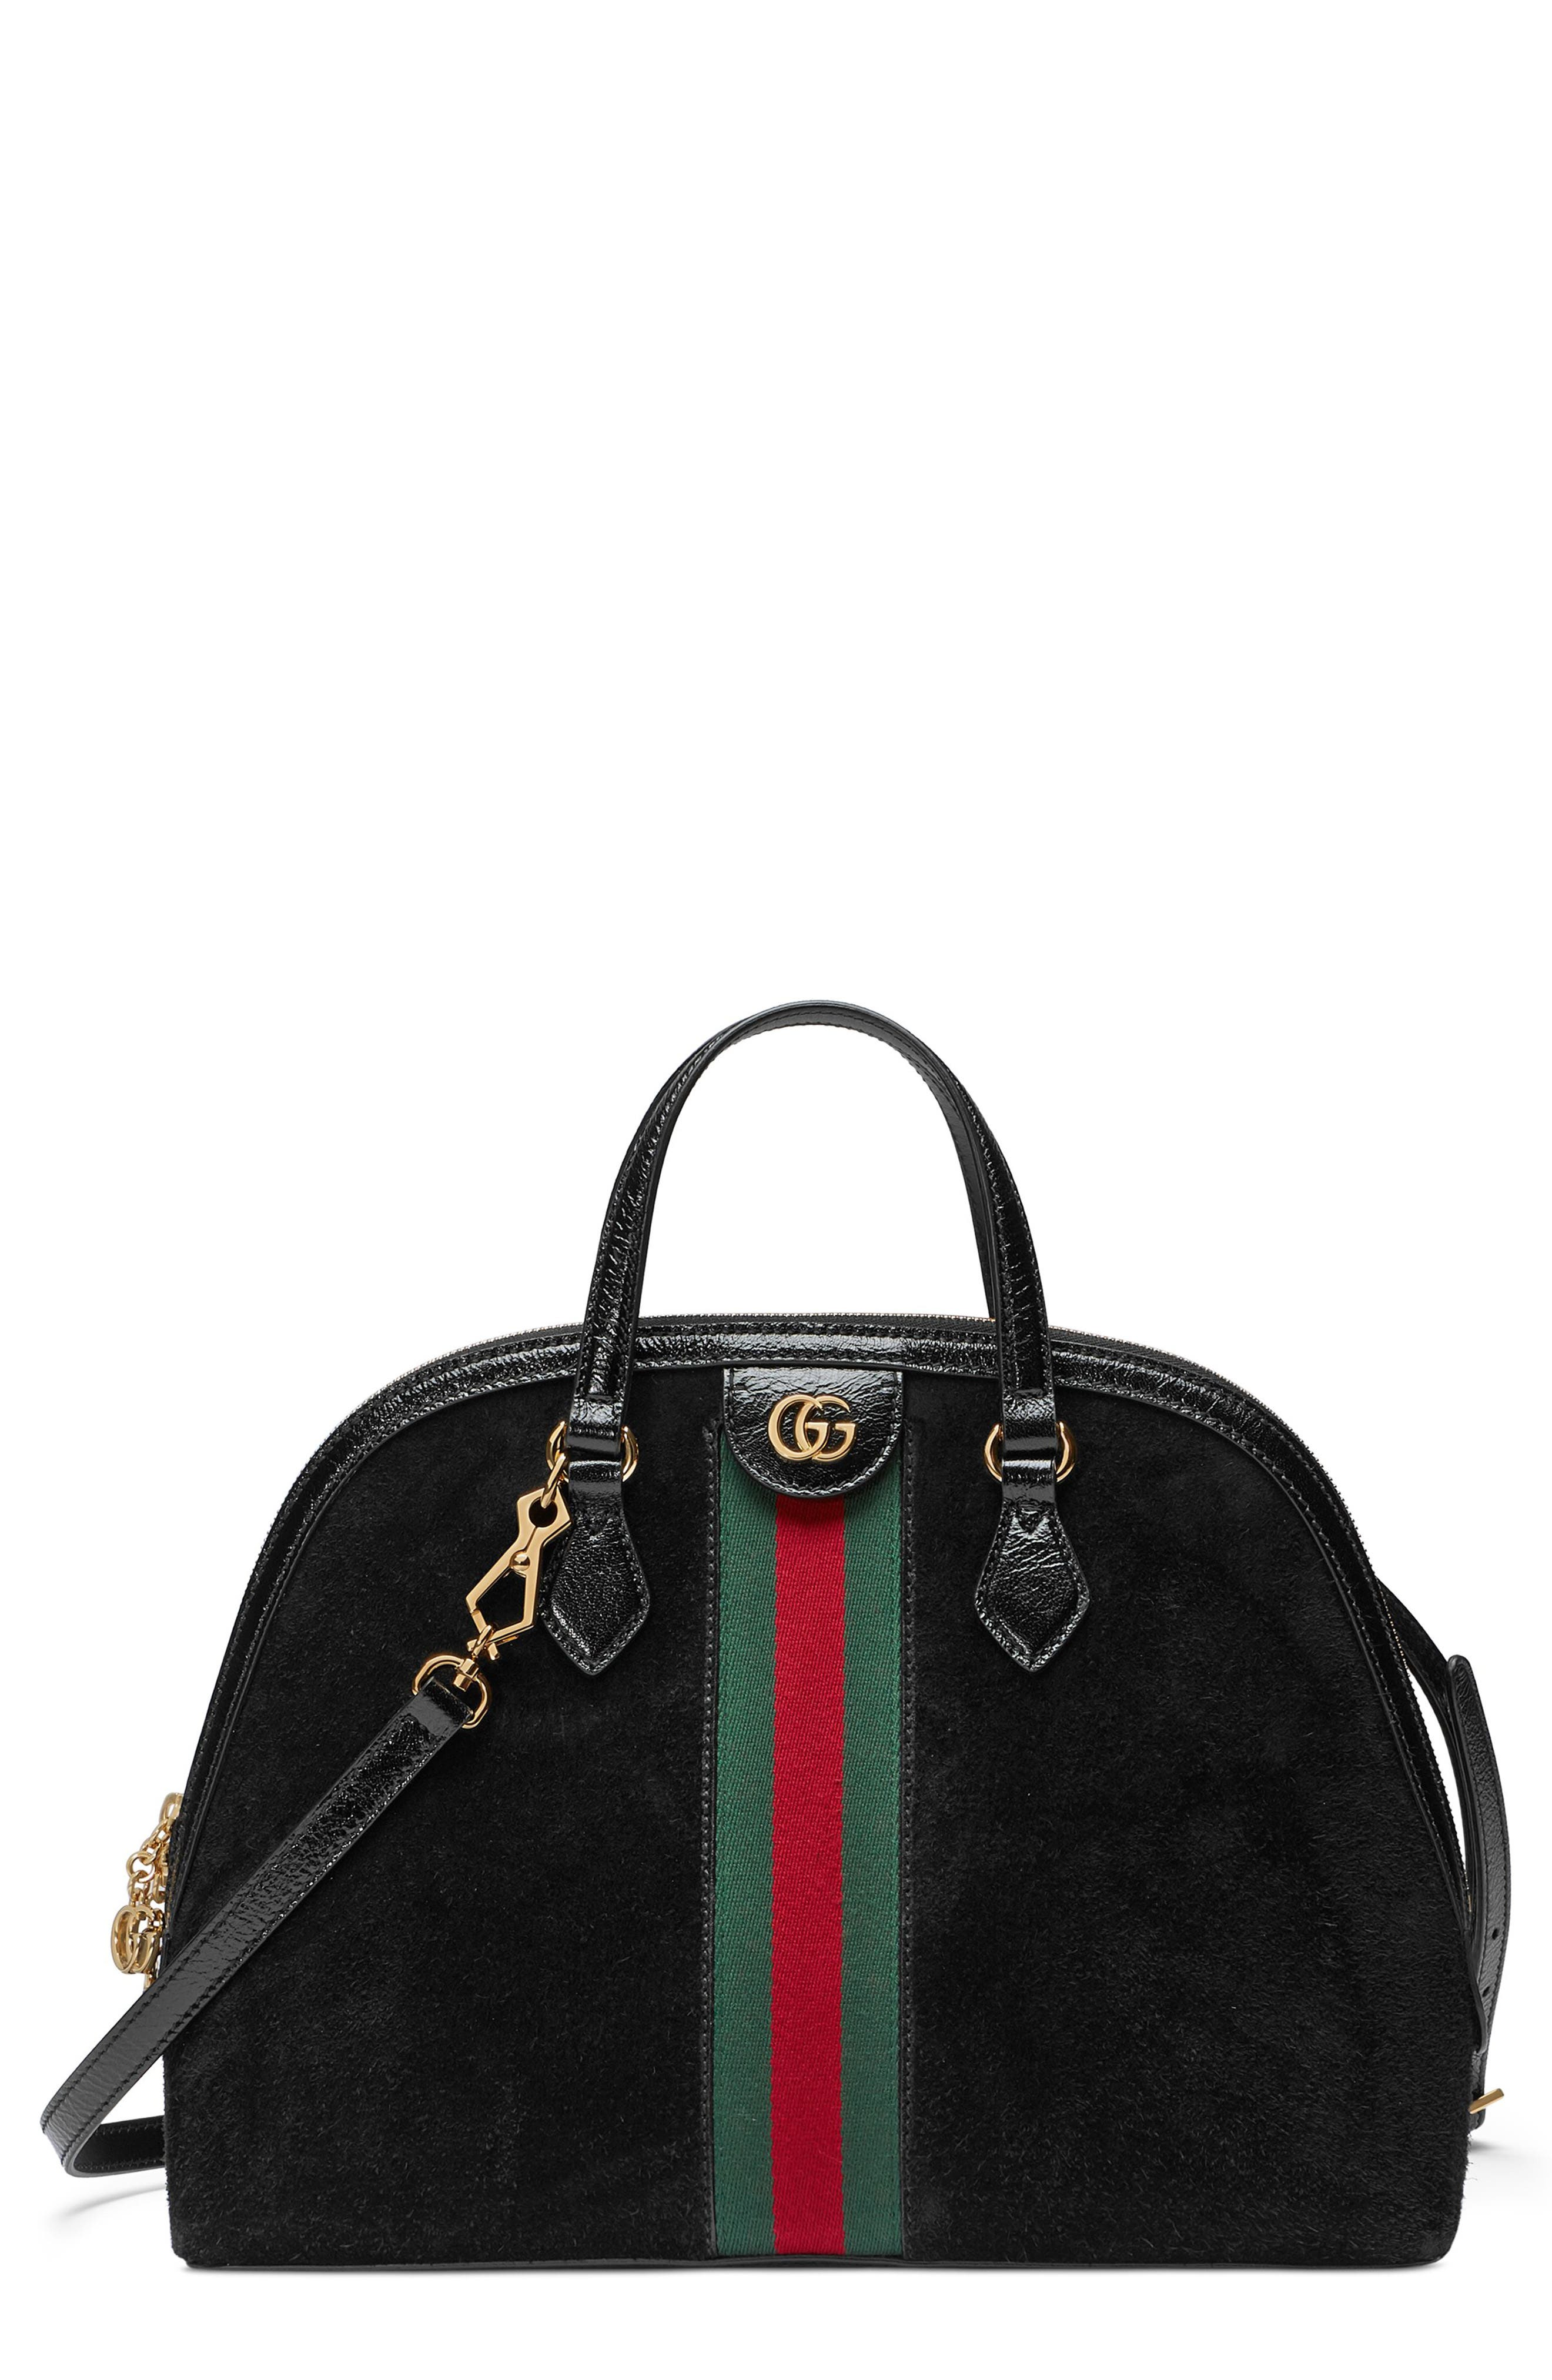 Ophidia Suede Dome Satchel,                             Main thumbnail 1, color,                             NERO/ NERO/ VERT RED VERT